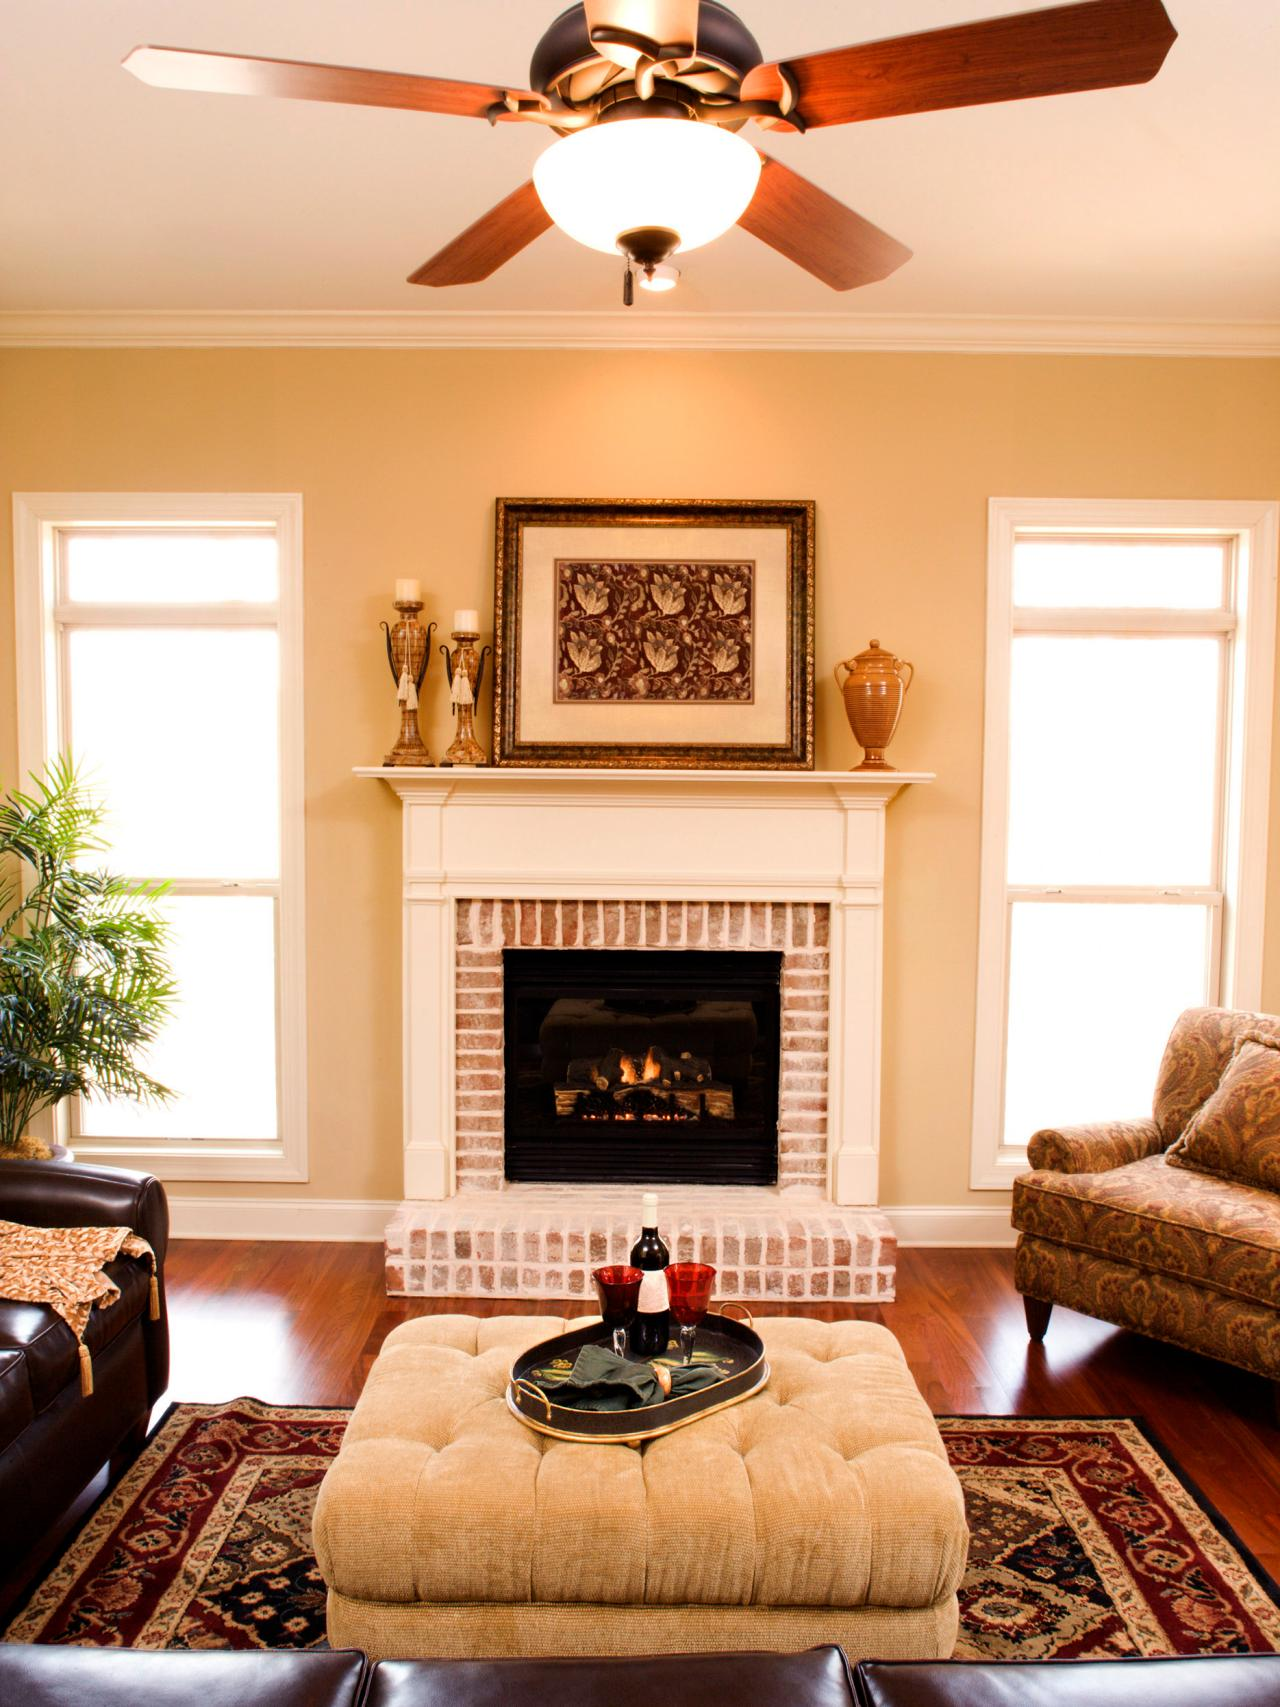 improve energy efficiency with a ceiling fan hgtv. Black Bedroom Furniture Sets. Home Design Ideas